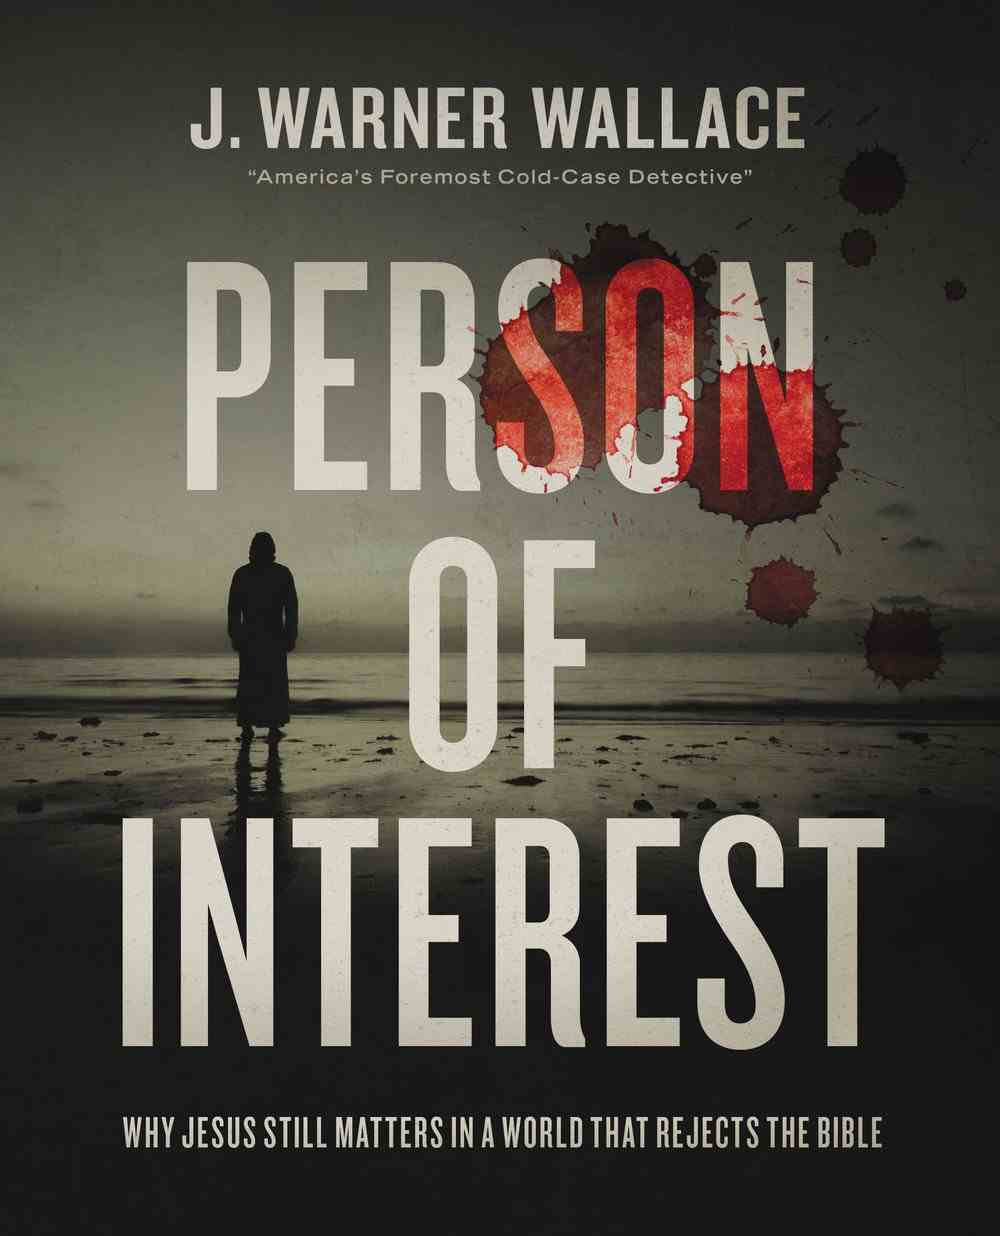 Person of Interest: Why Jesus Still Matters in a World That Rejects the Bible Paperback